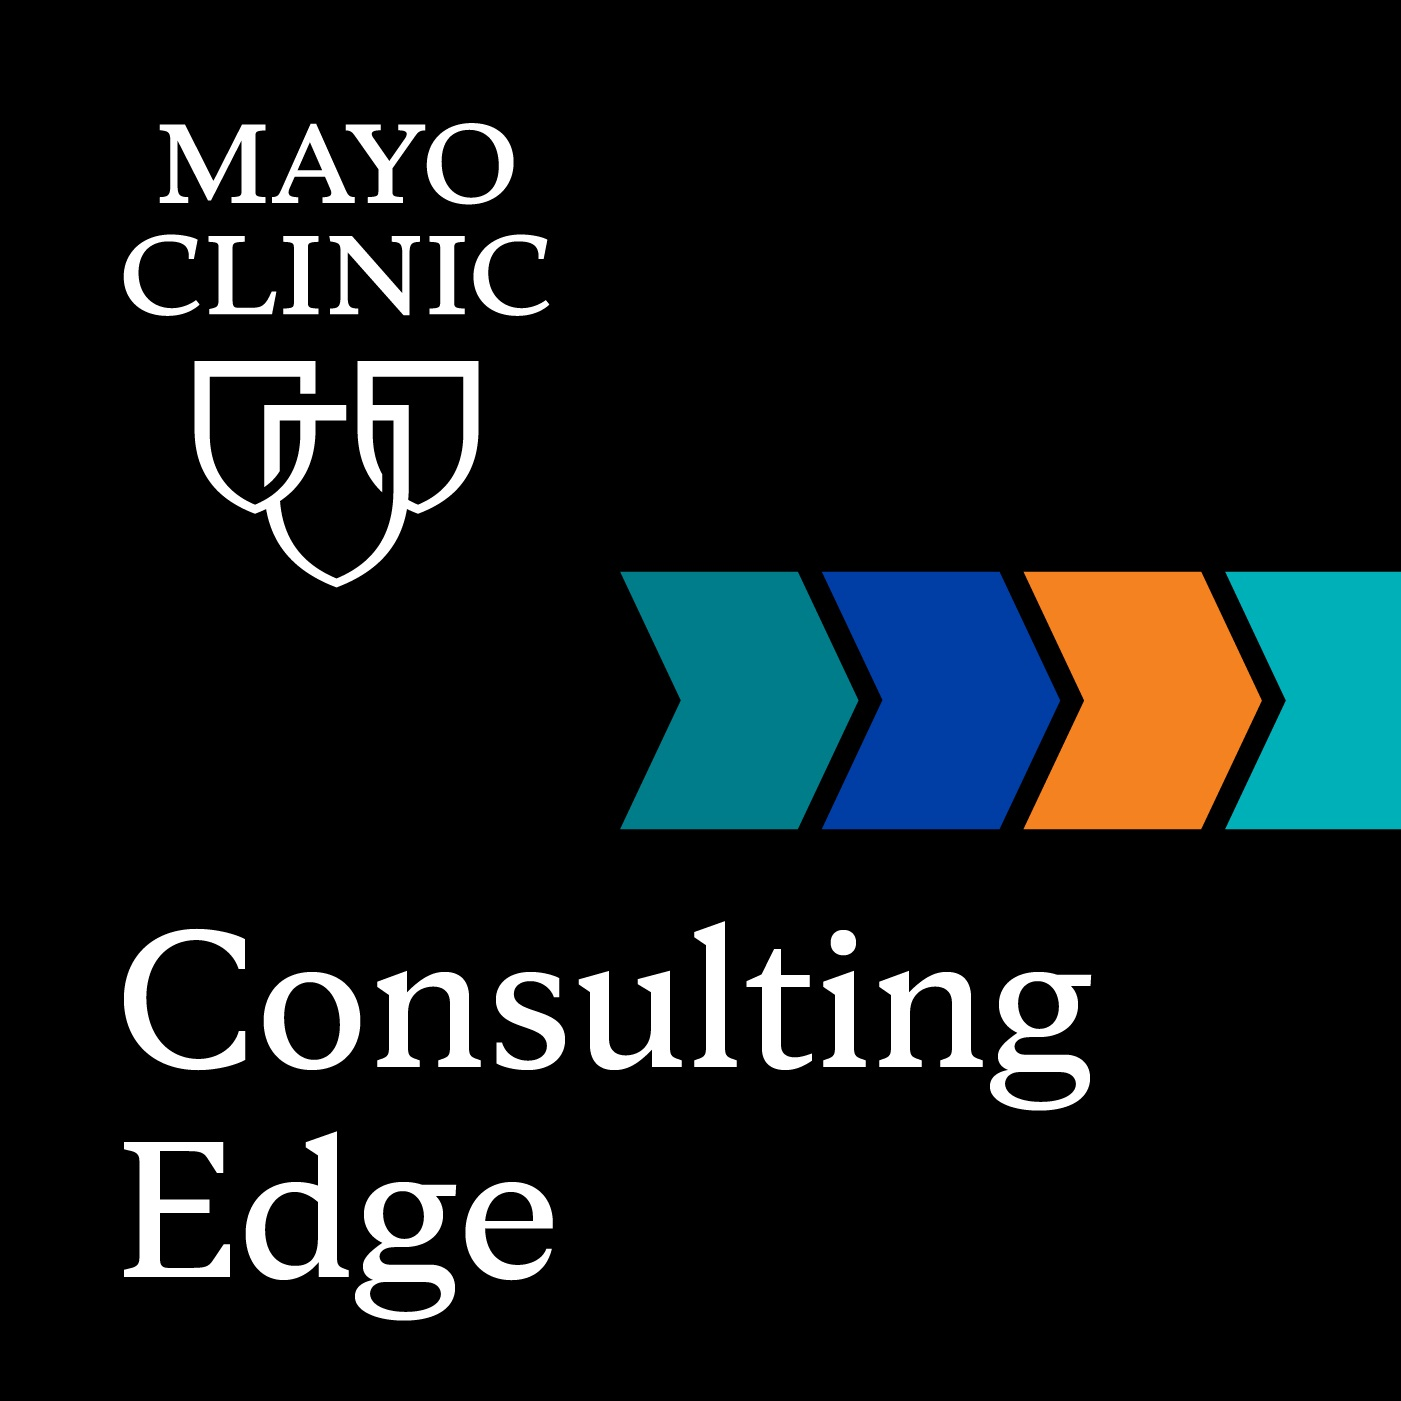 Mayo Clinic Consulting Edge